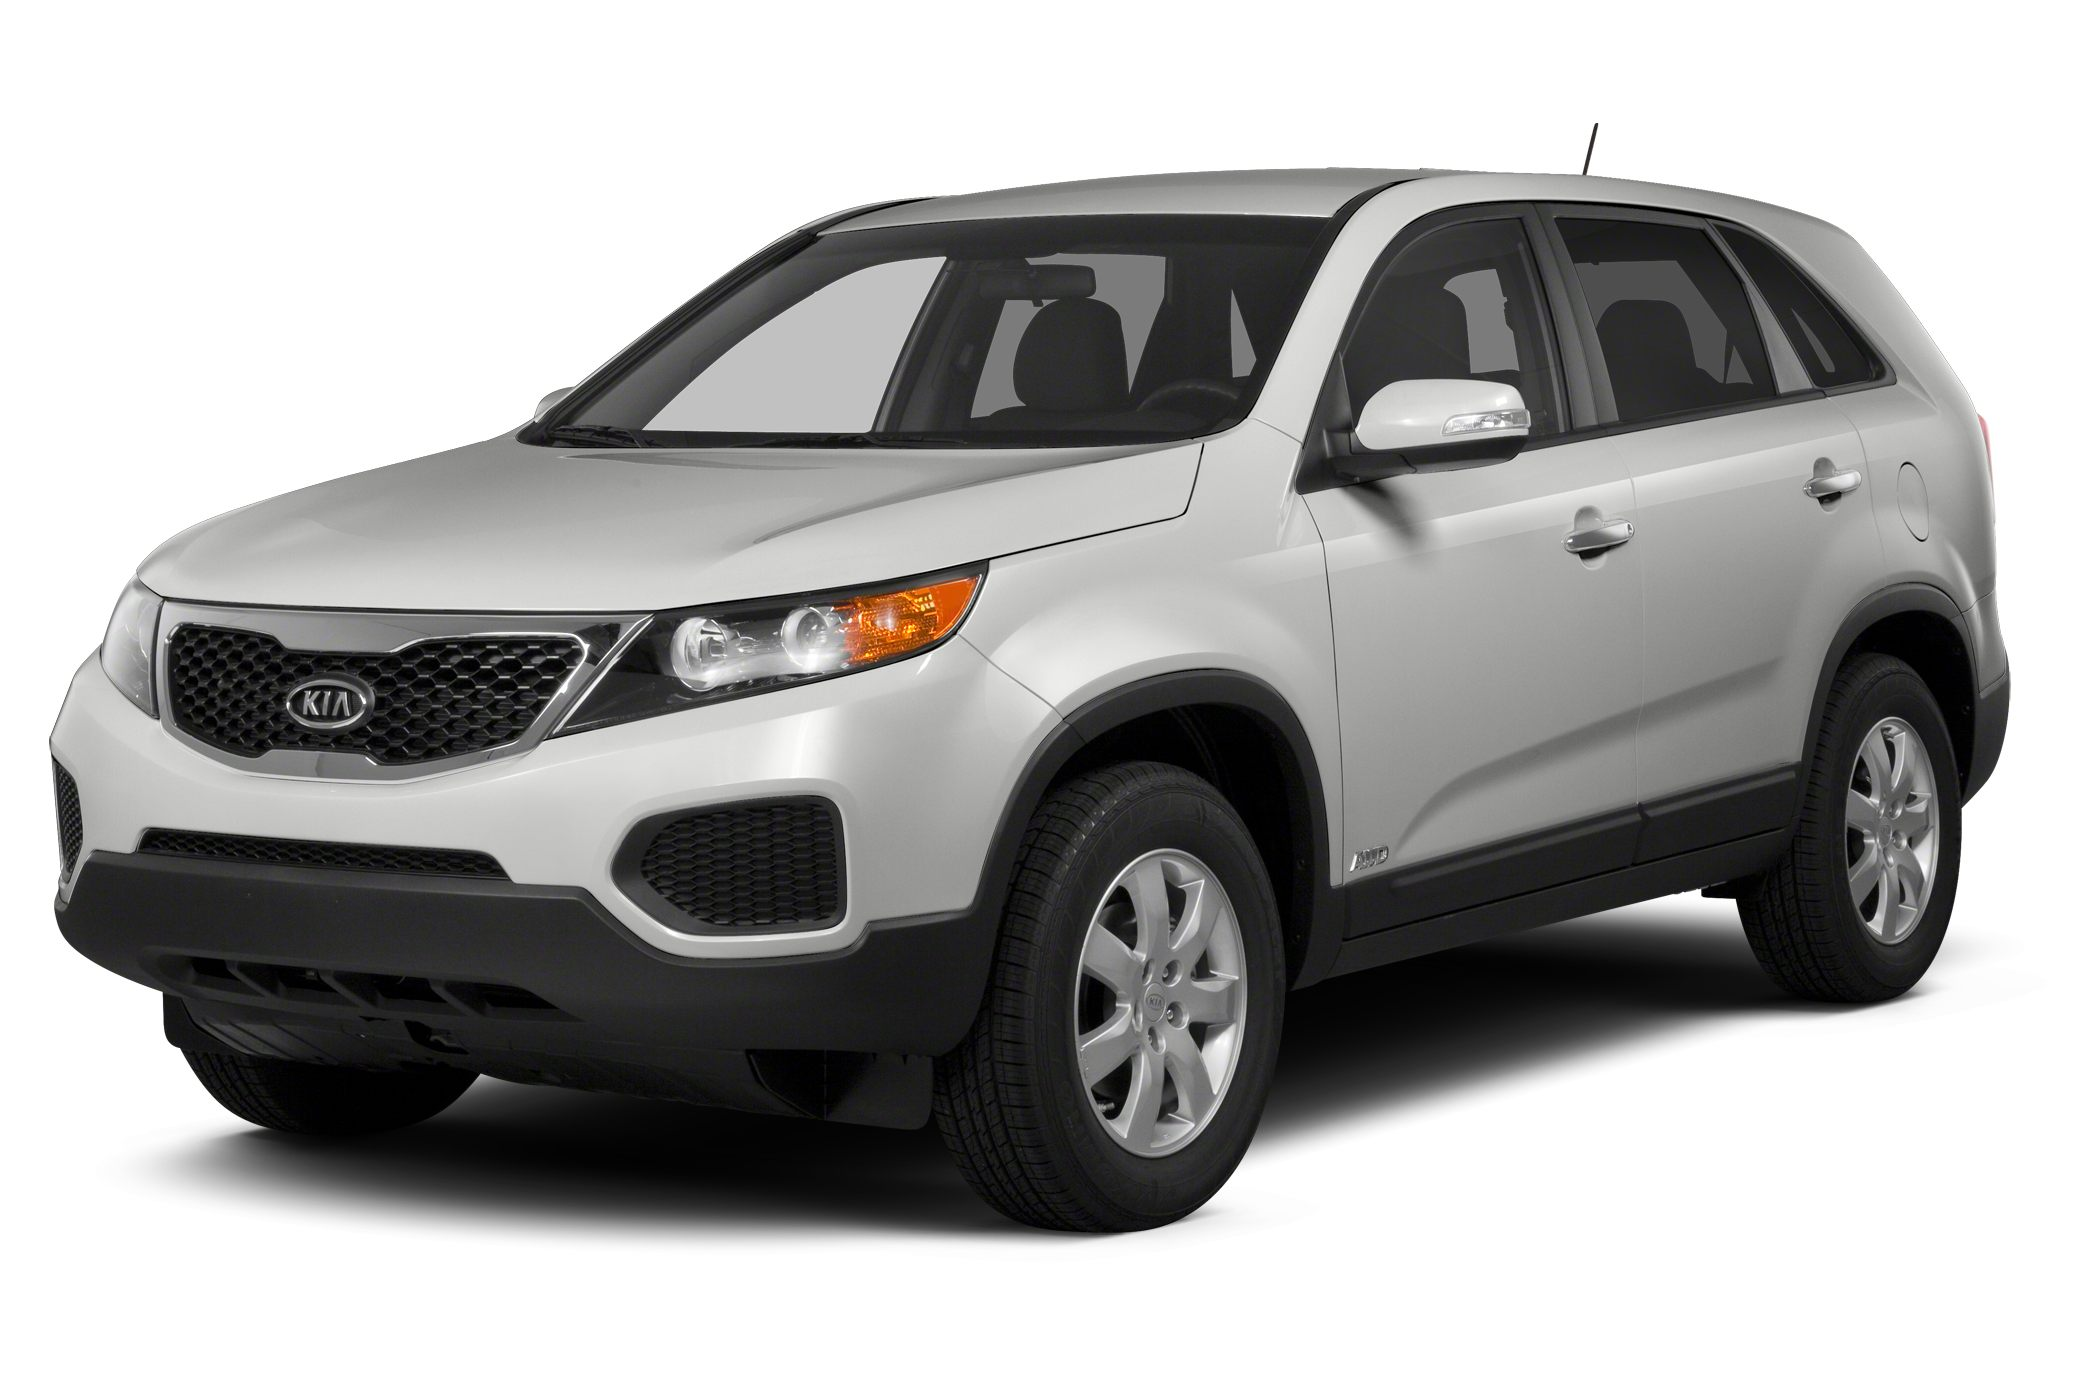 2012 Kia Sorento LX SUV for sale in Clearwater for $17,997 with 13,243 miles